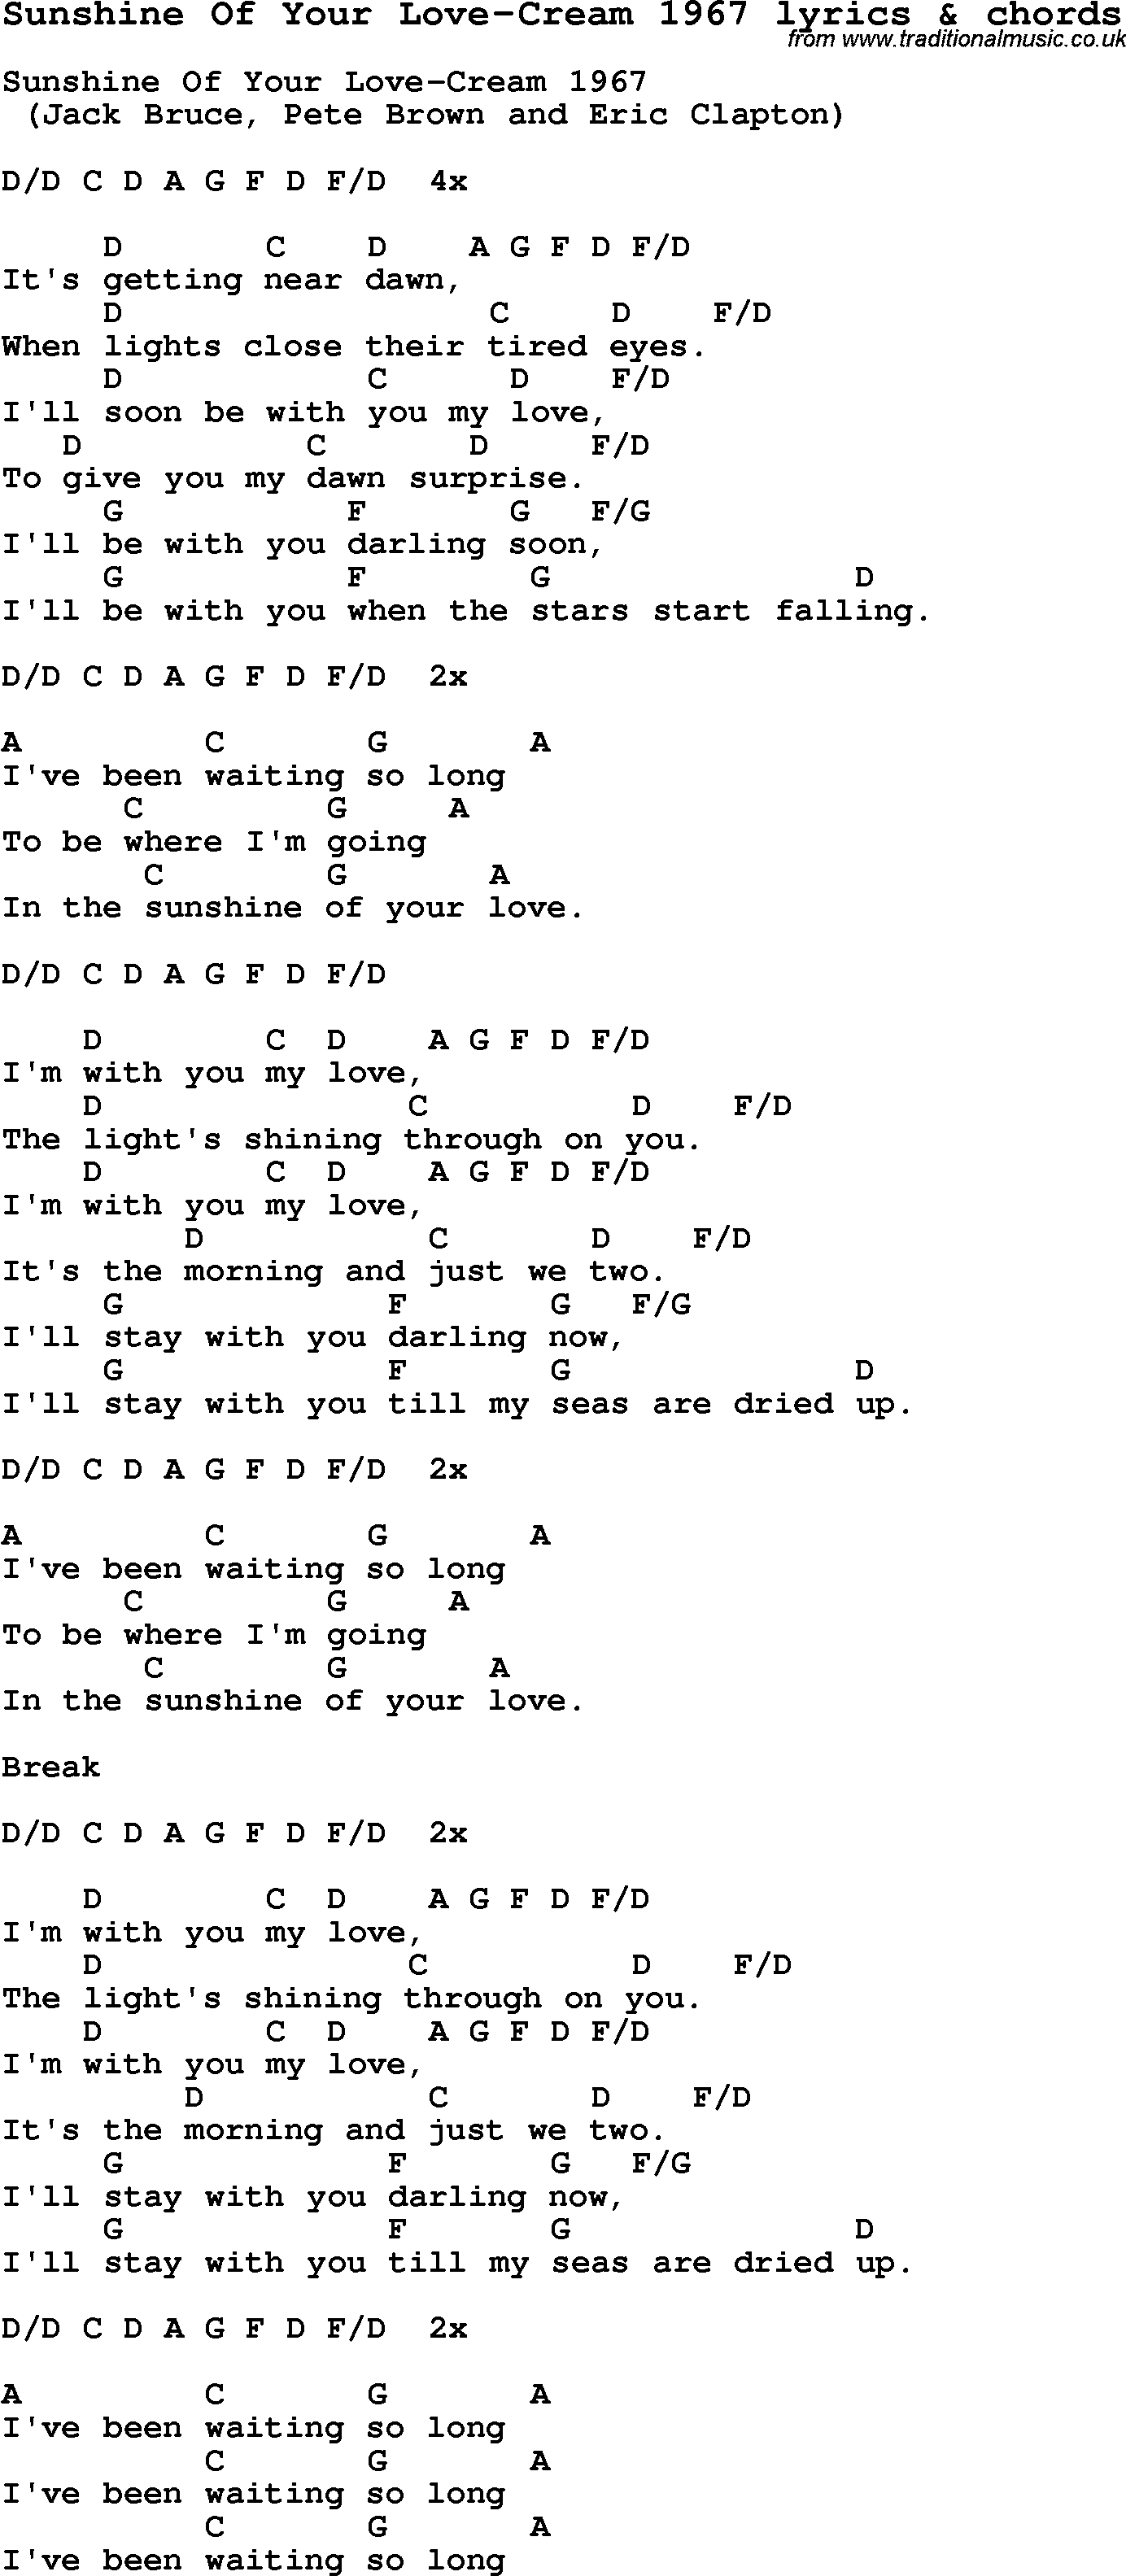 Love Song Lyrics for:Sunshine Of Your Love-Cream 1967 with chords.